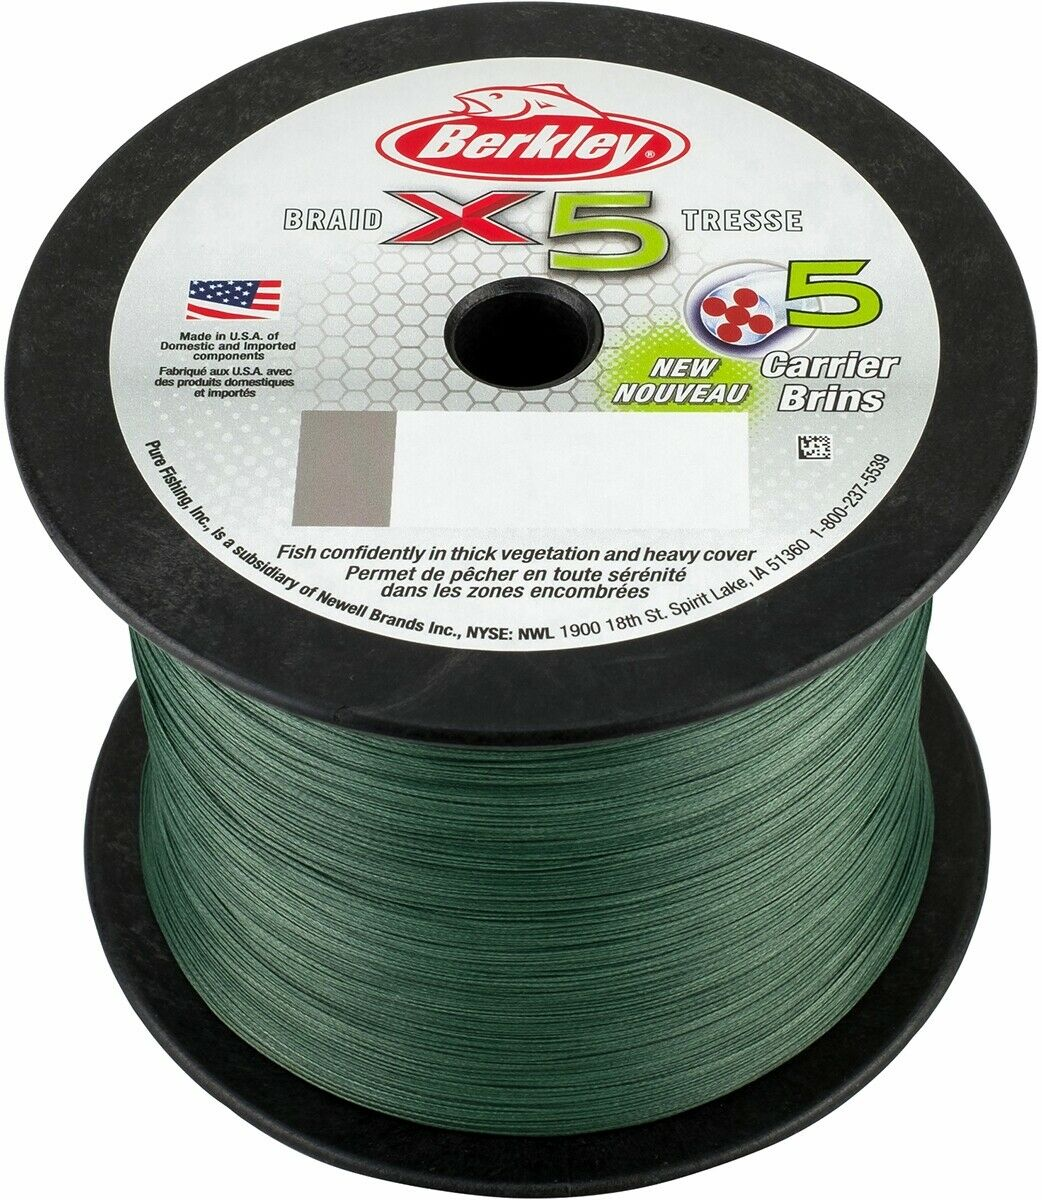 NEW 2018 Berkley X5 2000m Braid Bulk Spool Low-vis Green 30Lb   13.61kg 0.20mm